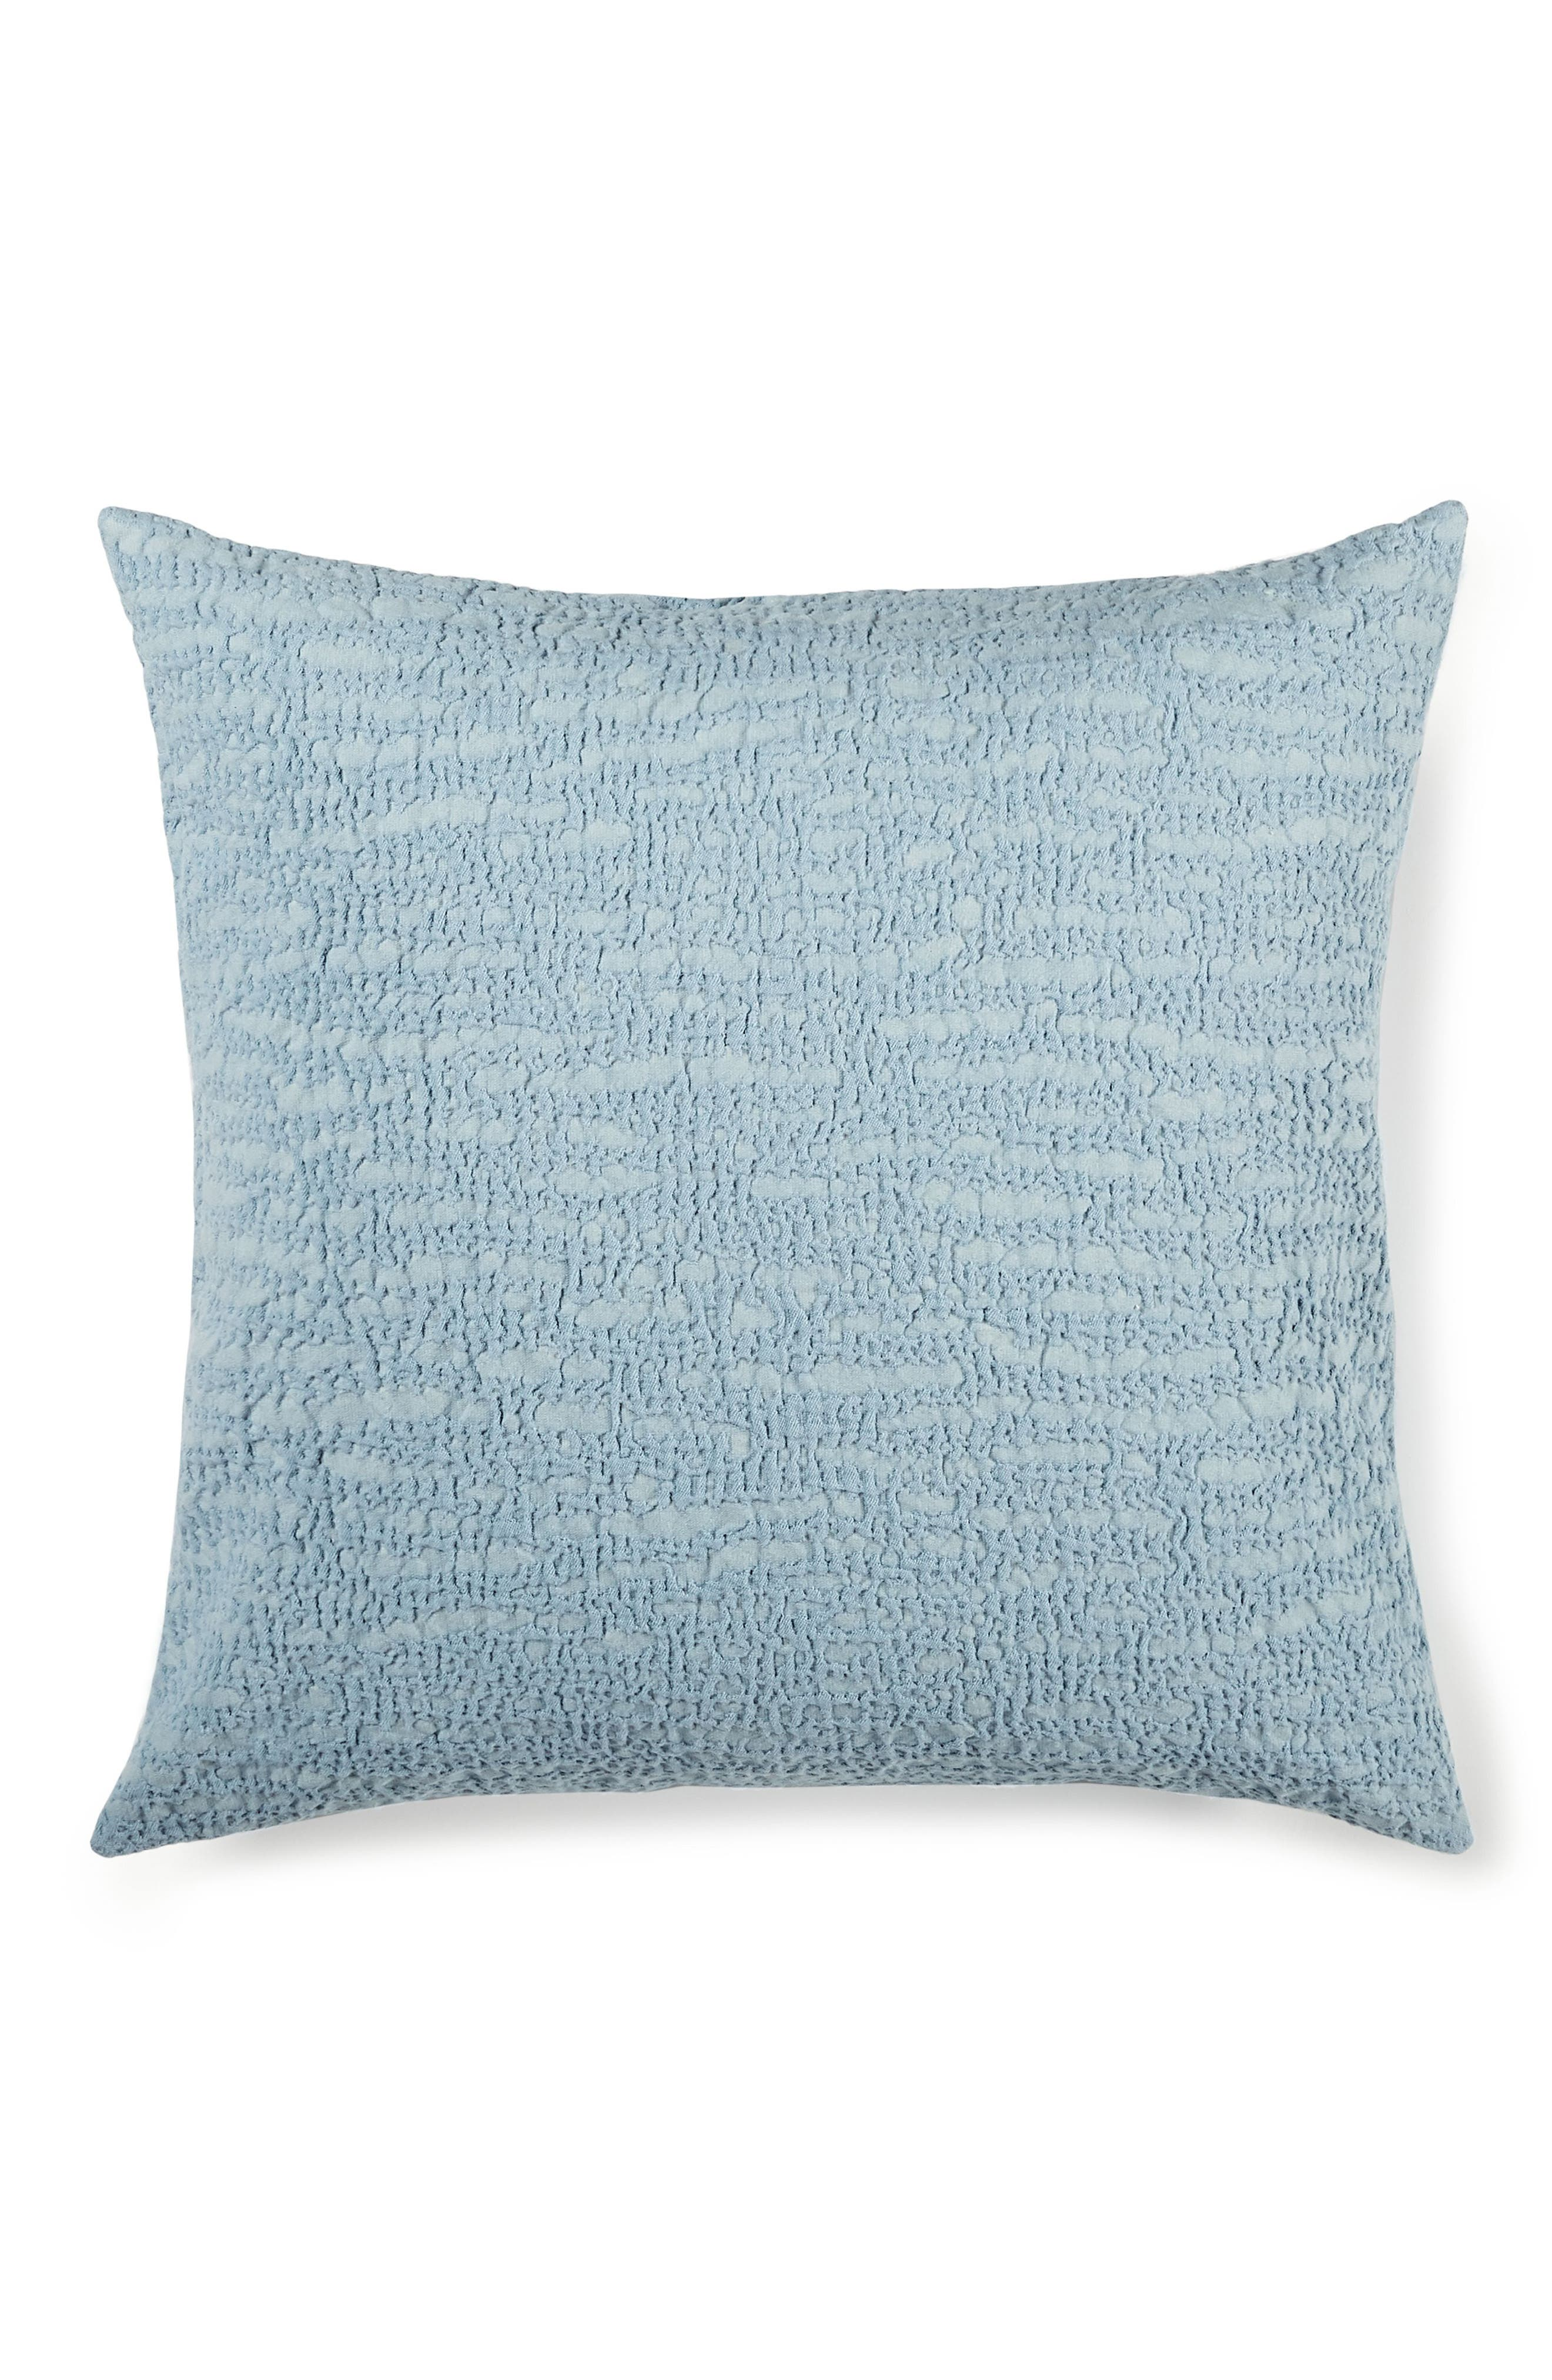 Mani Accent Pillow,                         Main,                         color, CELESTIAL